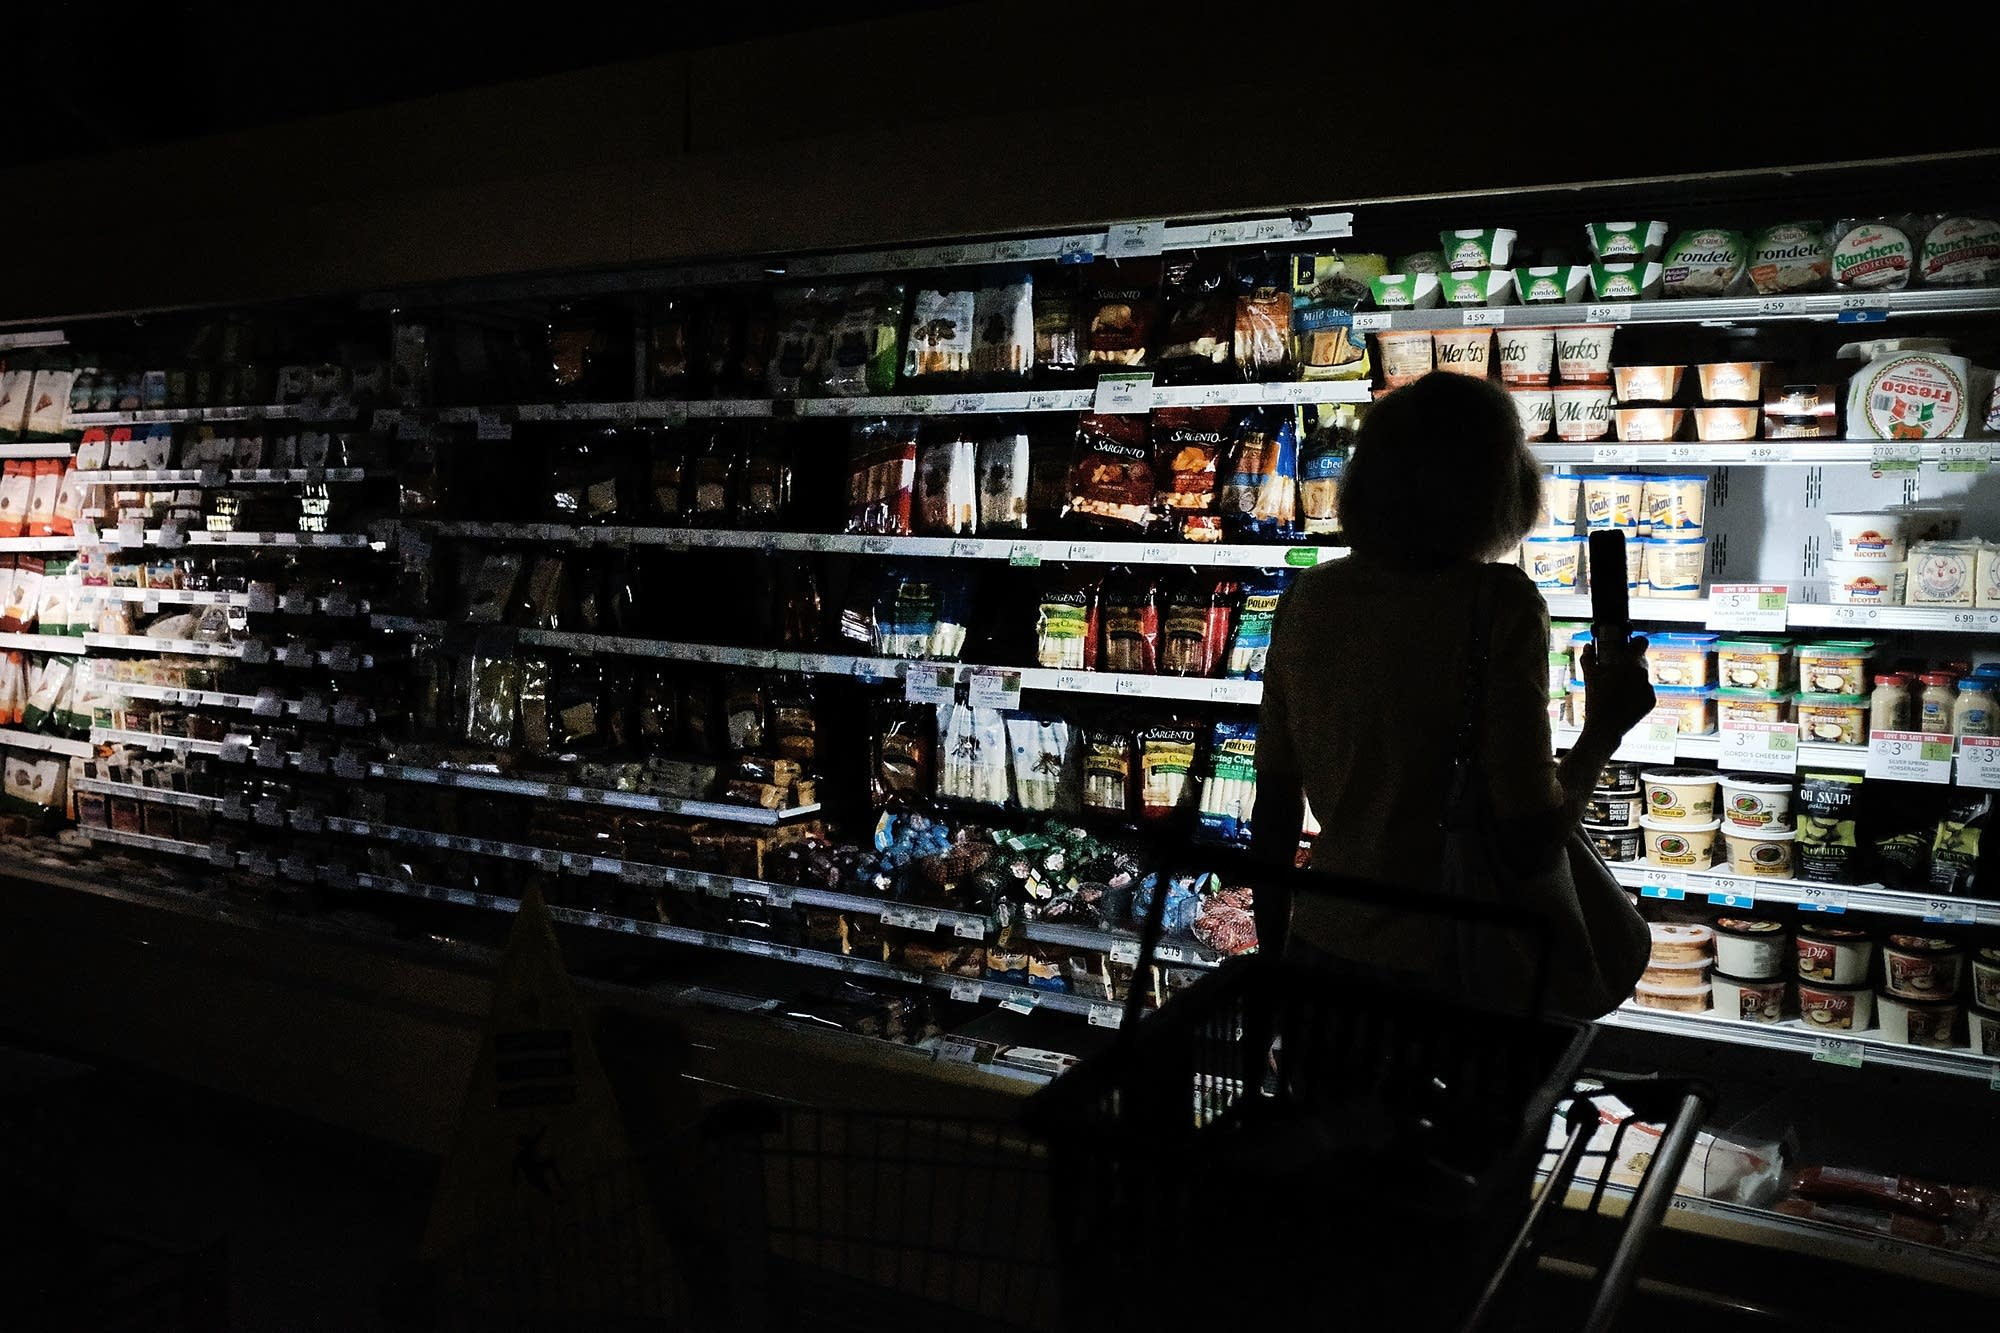 People shop in a supermarket with limited electricity.